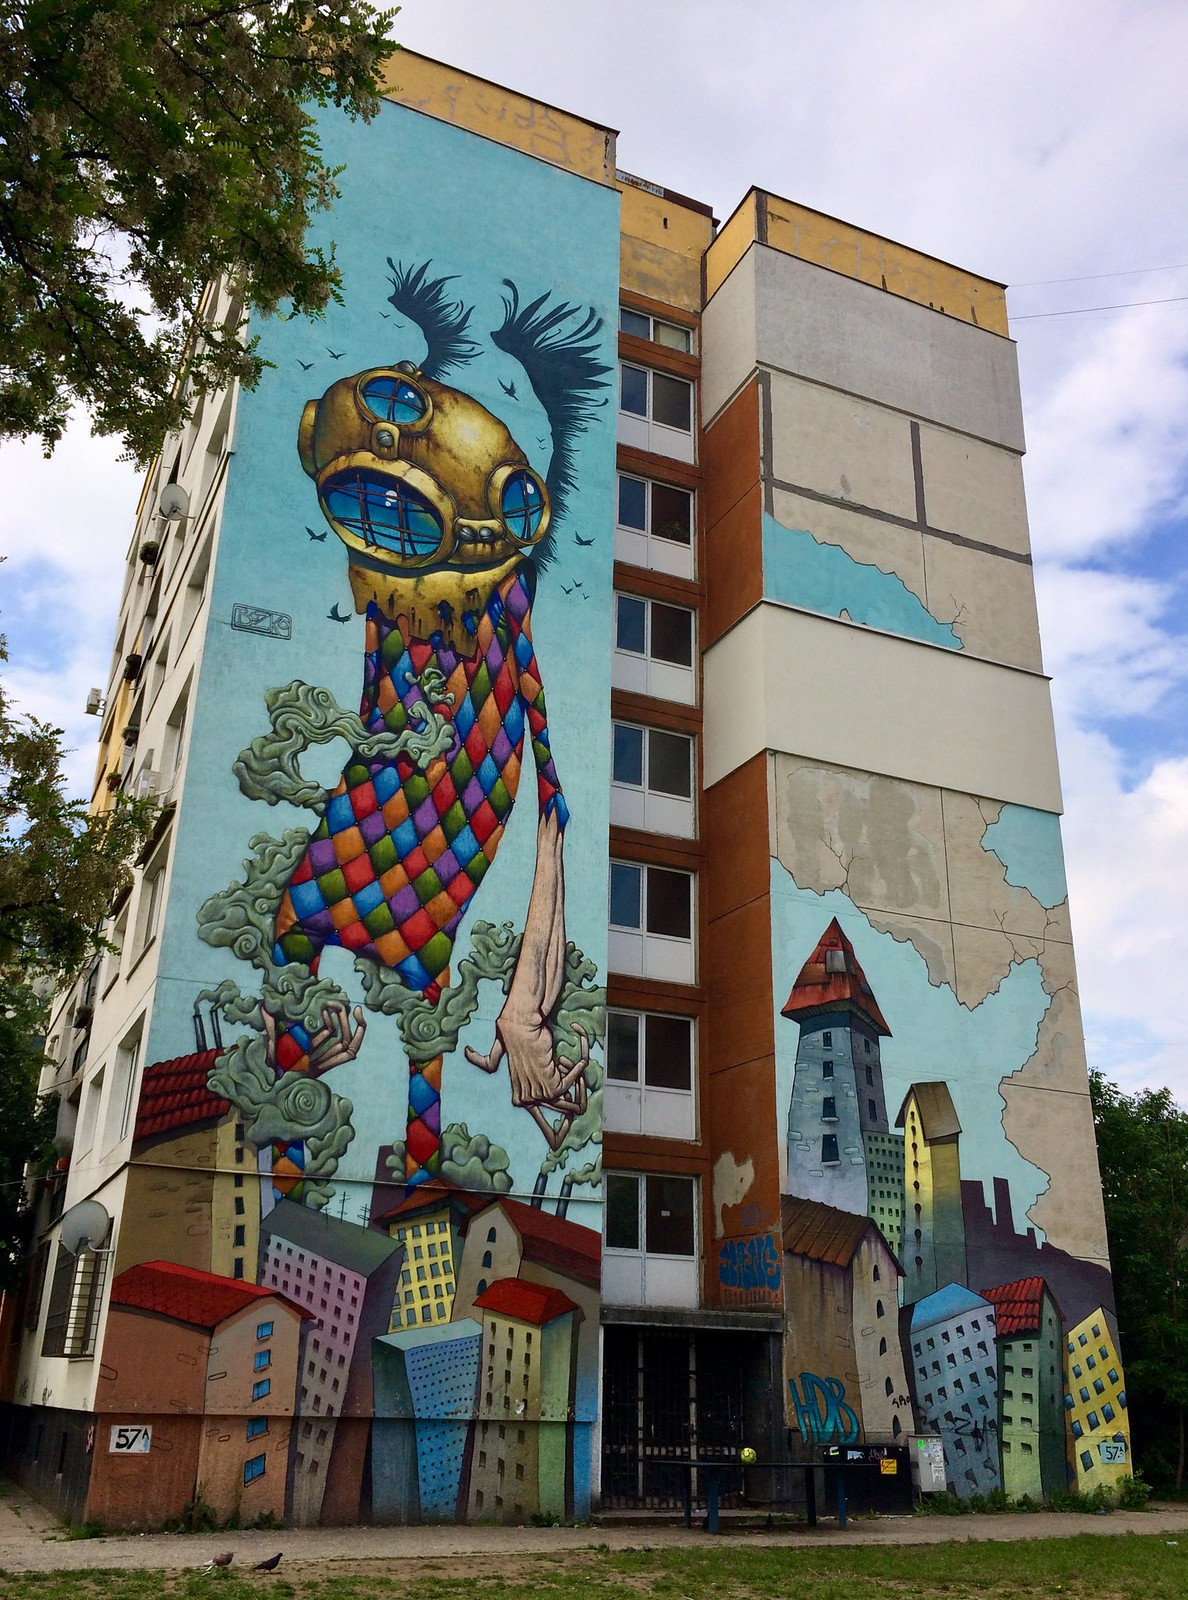 201705 - Balkans - Full Building Figures Graffiti - 30 of 46 - Sofia - zhk Hadzhi Dimitar - ulitsa Ostrovo, May 22, 2017